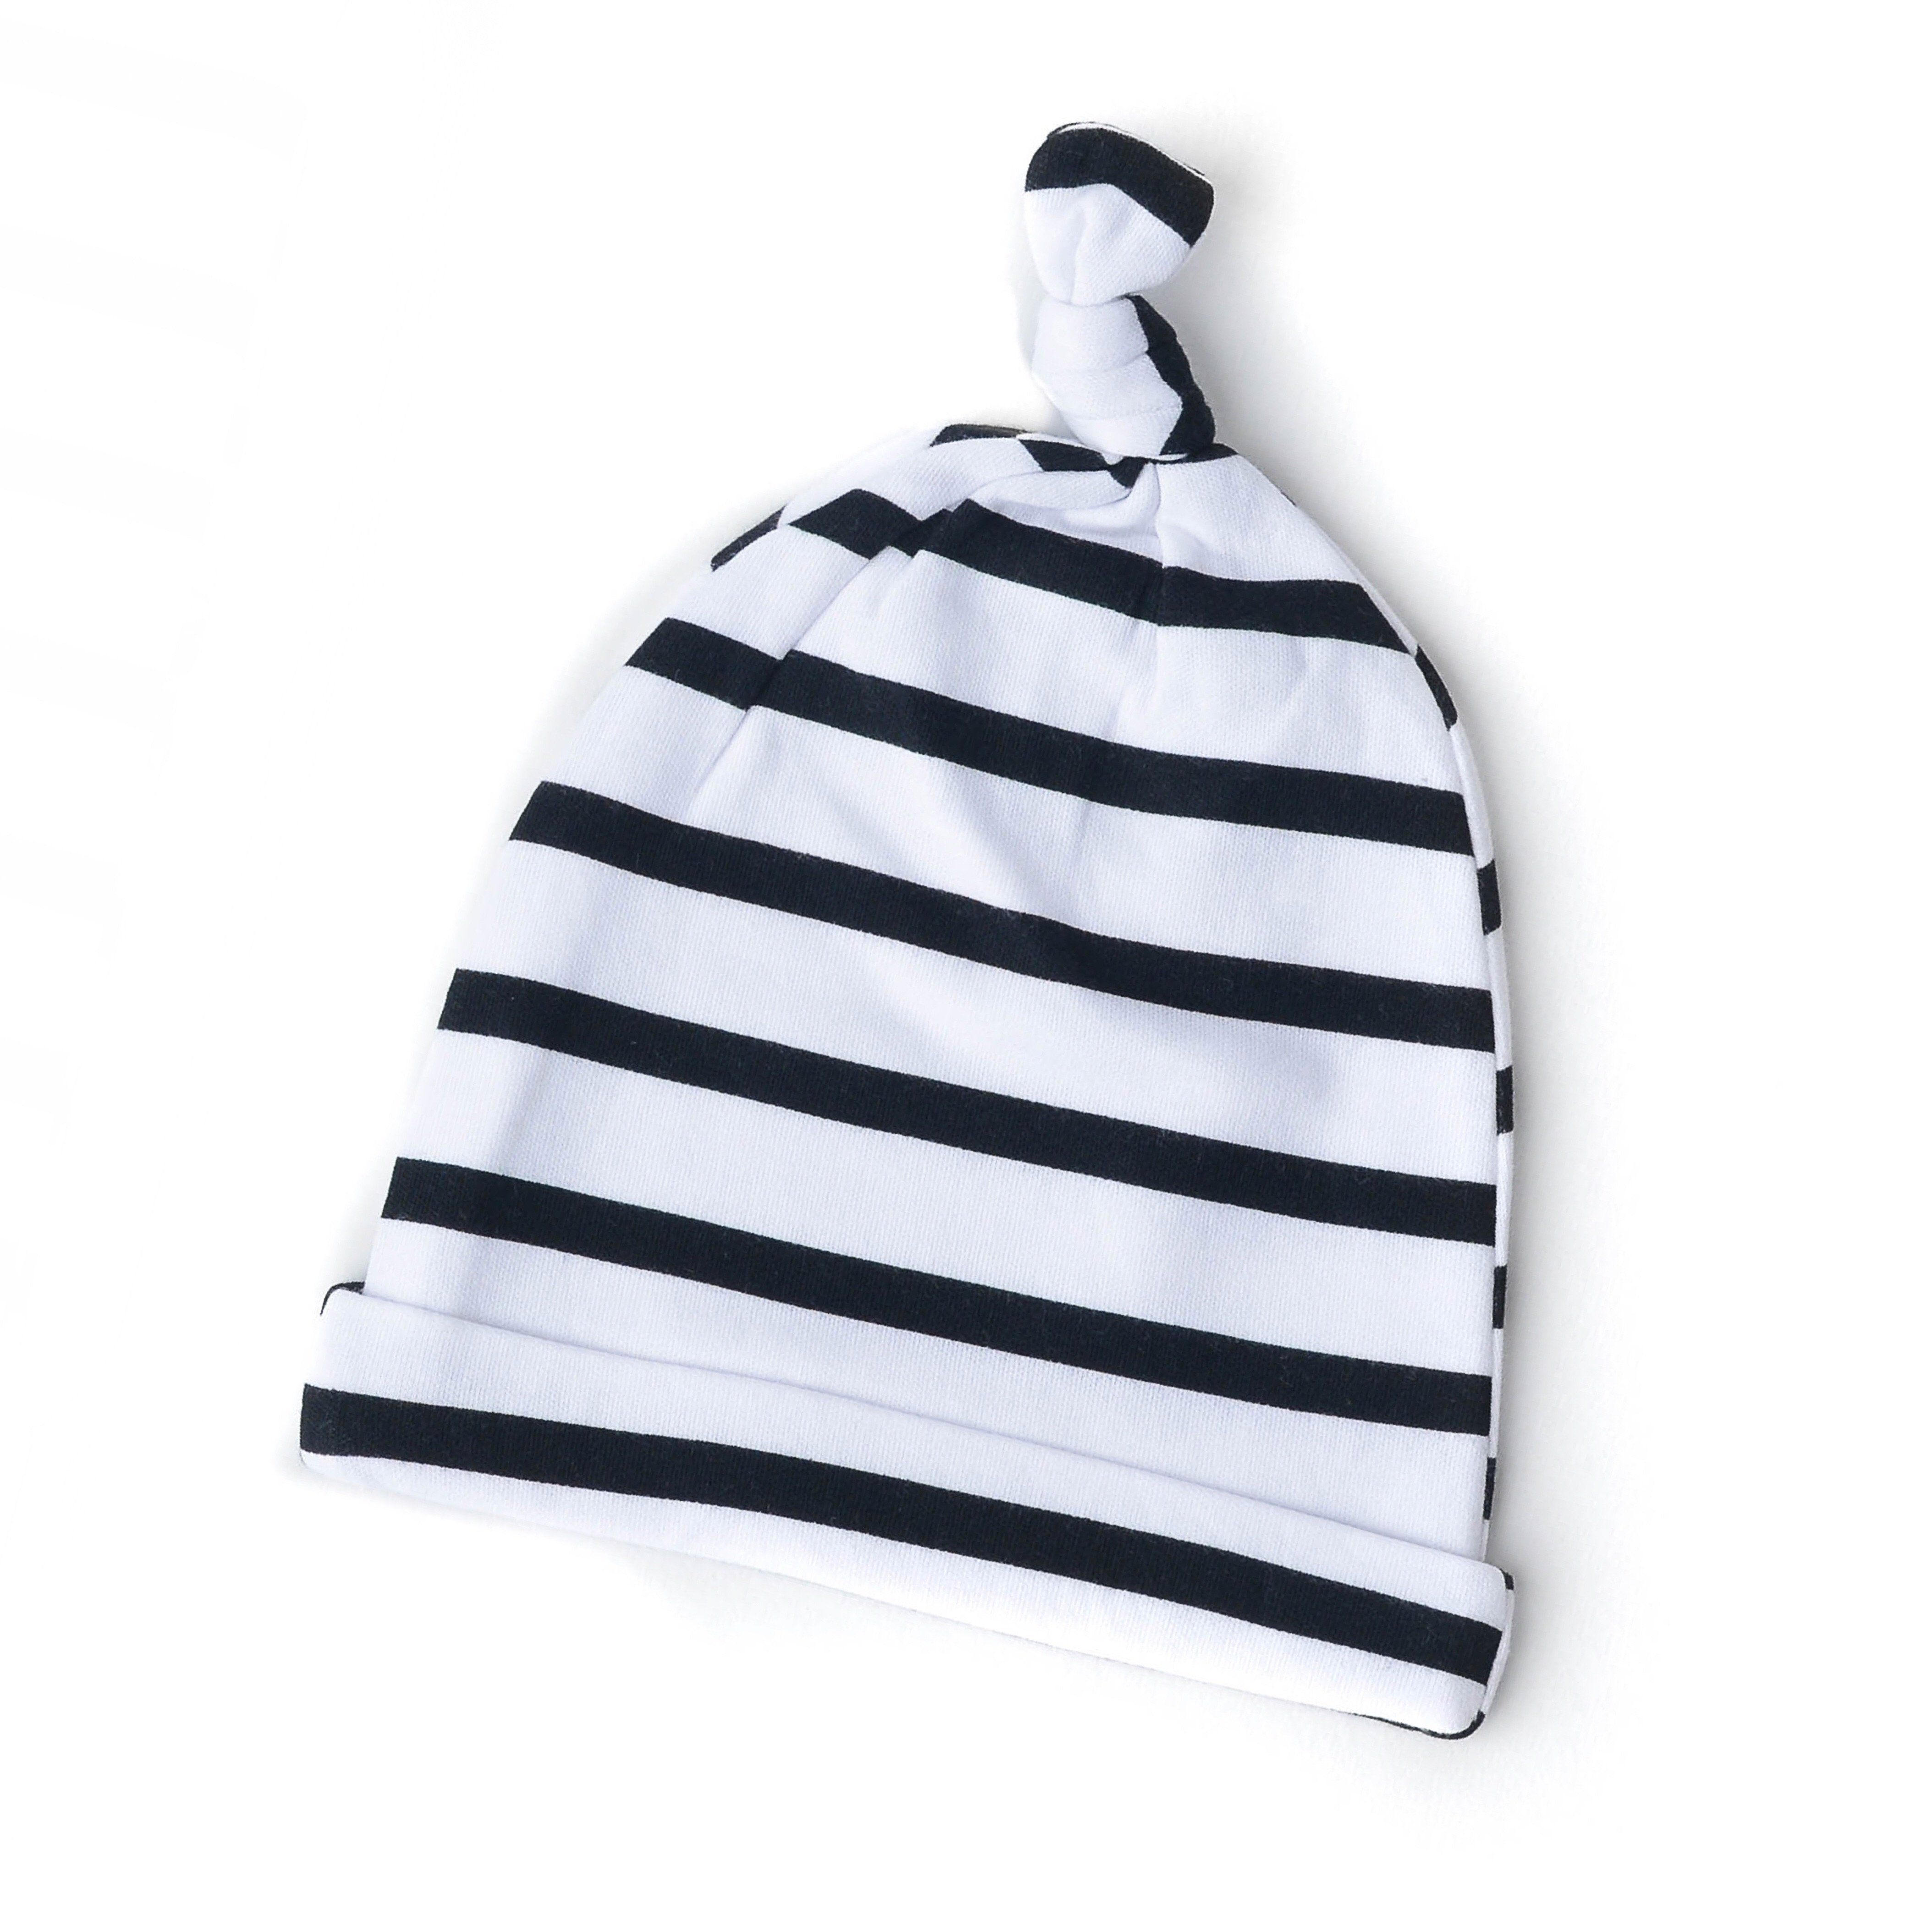 black and ivory stripe gown unisex baby gown take home outfit, Baby knotted gown in Charlie stripe with matching Black hat or headband